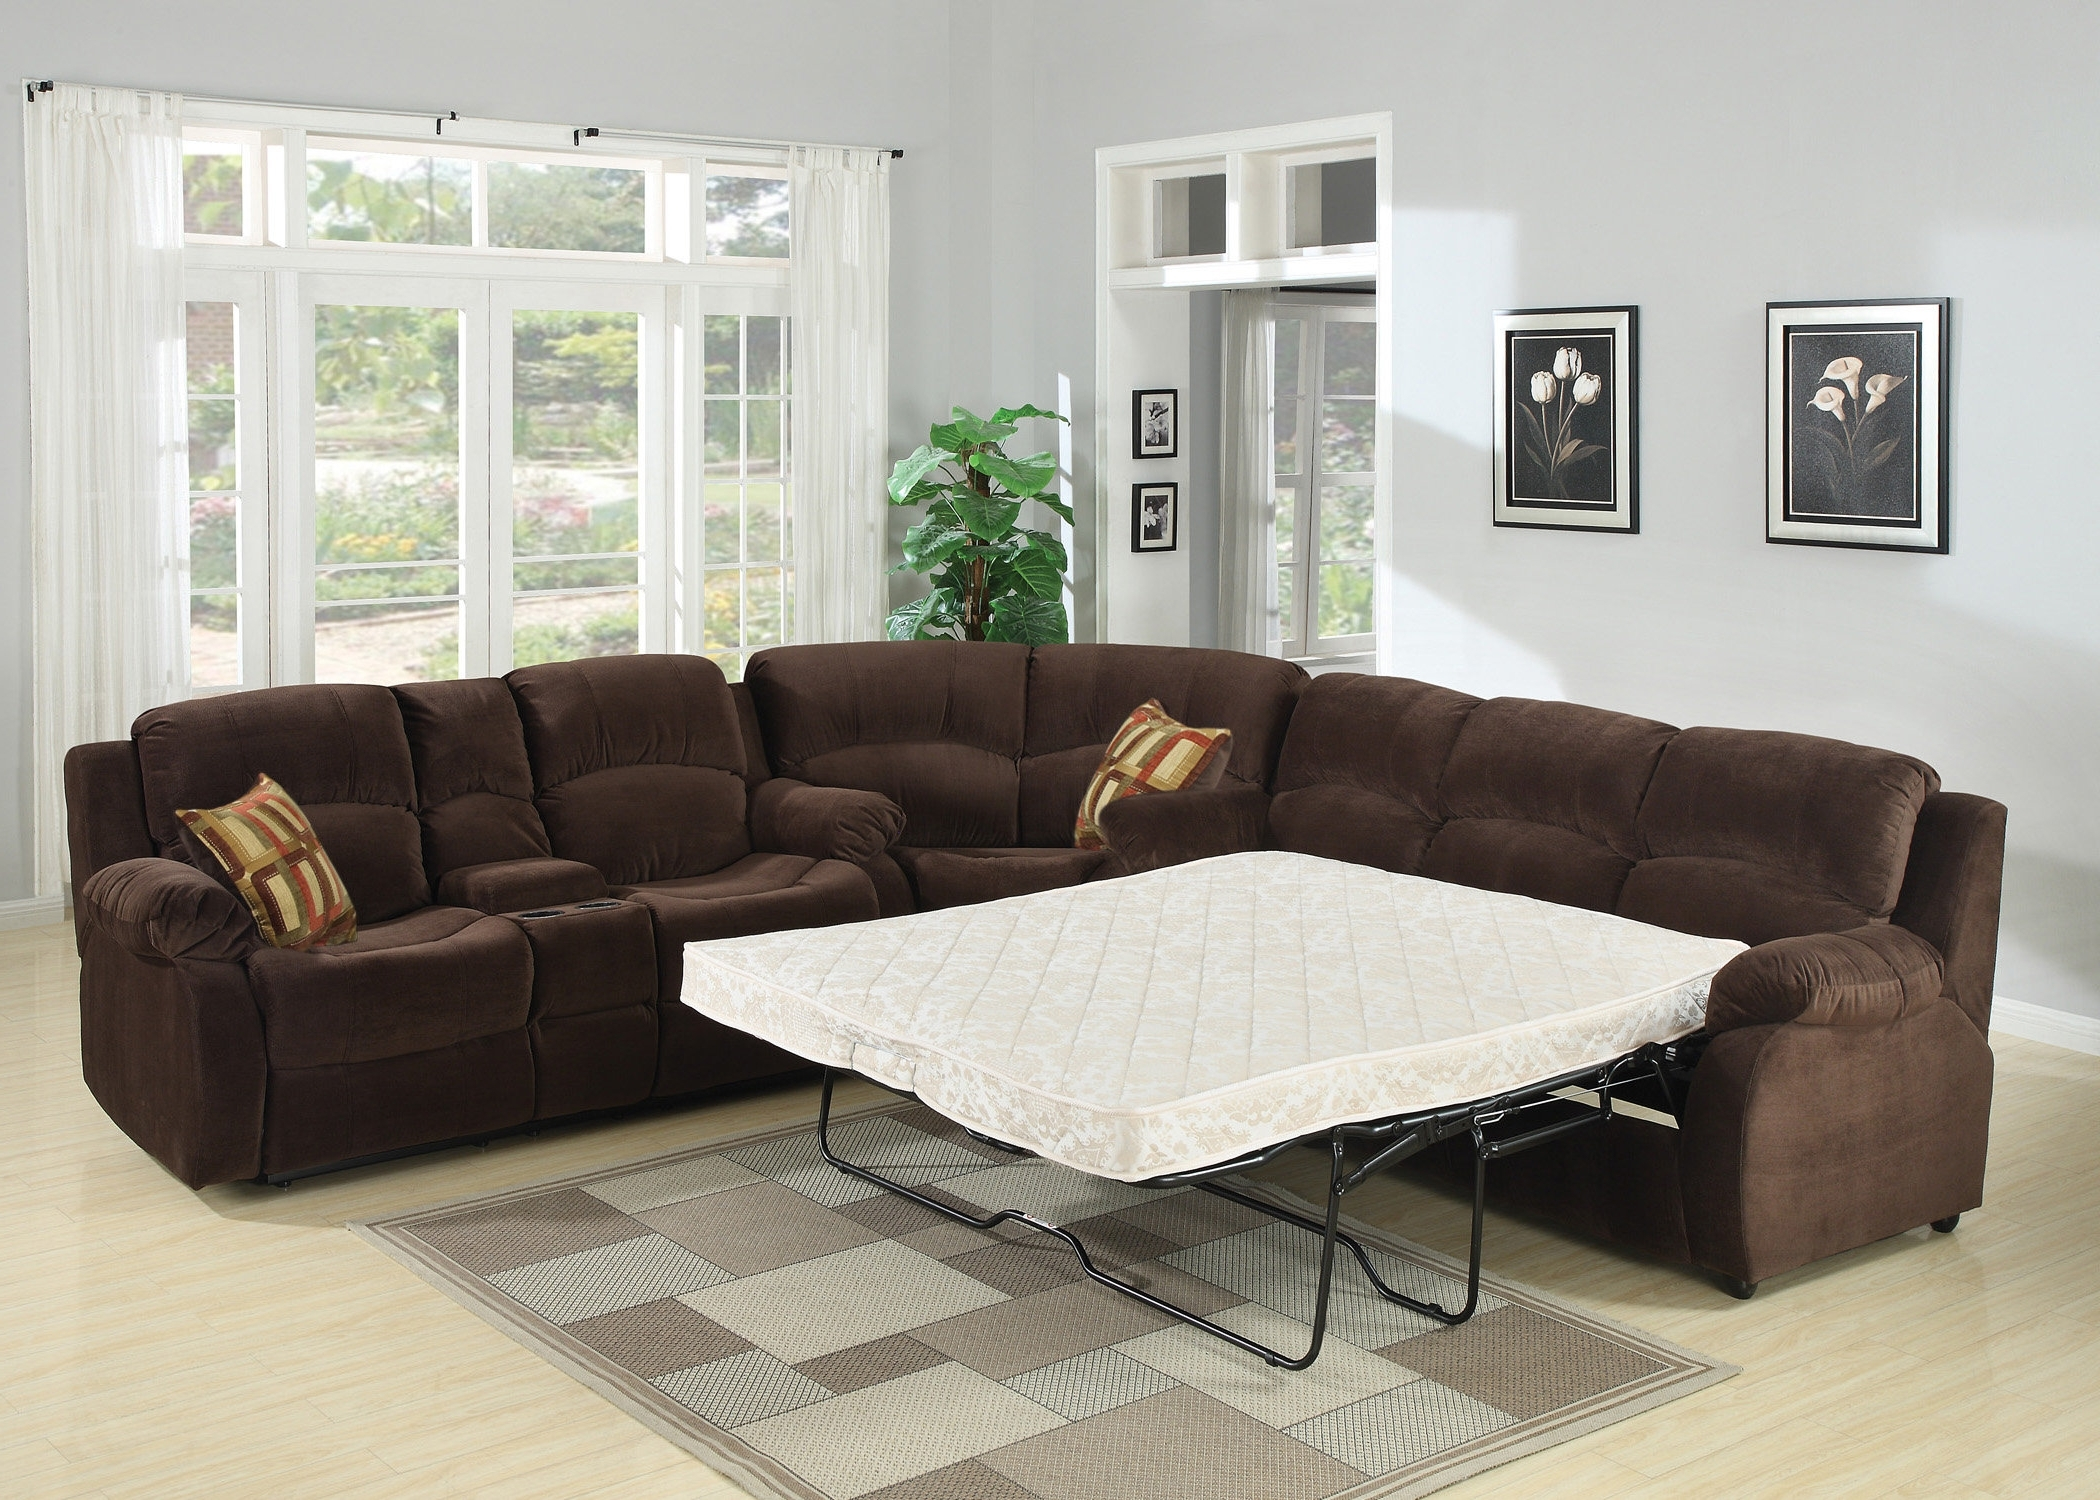 Wayfair With Regard To Down Filled Sectional Sofas (View 16 of 20)